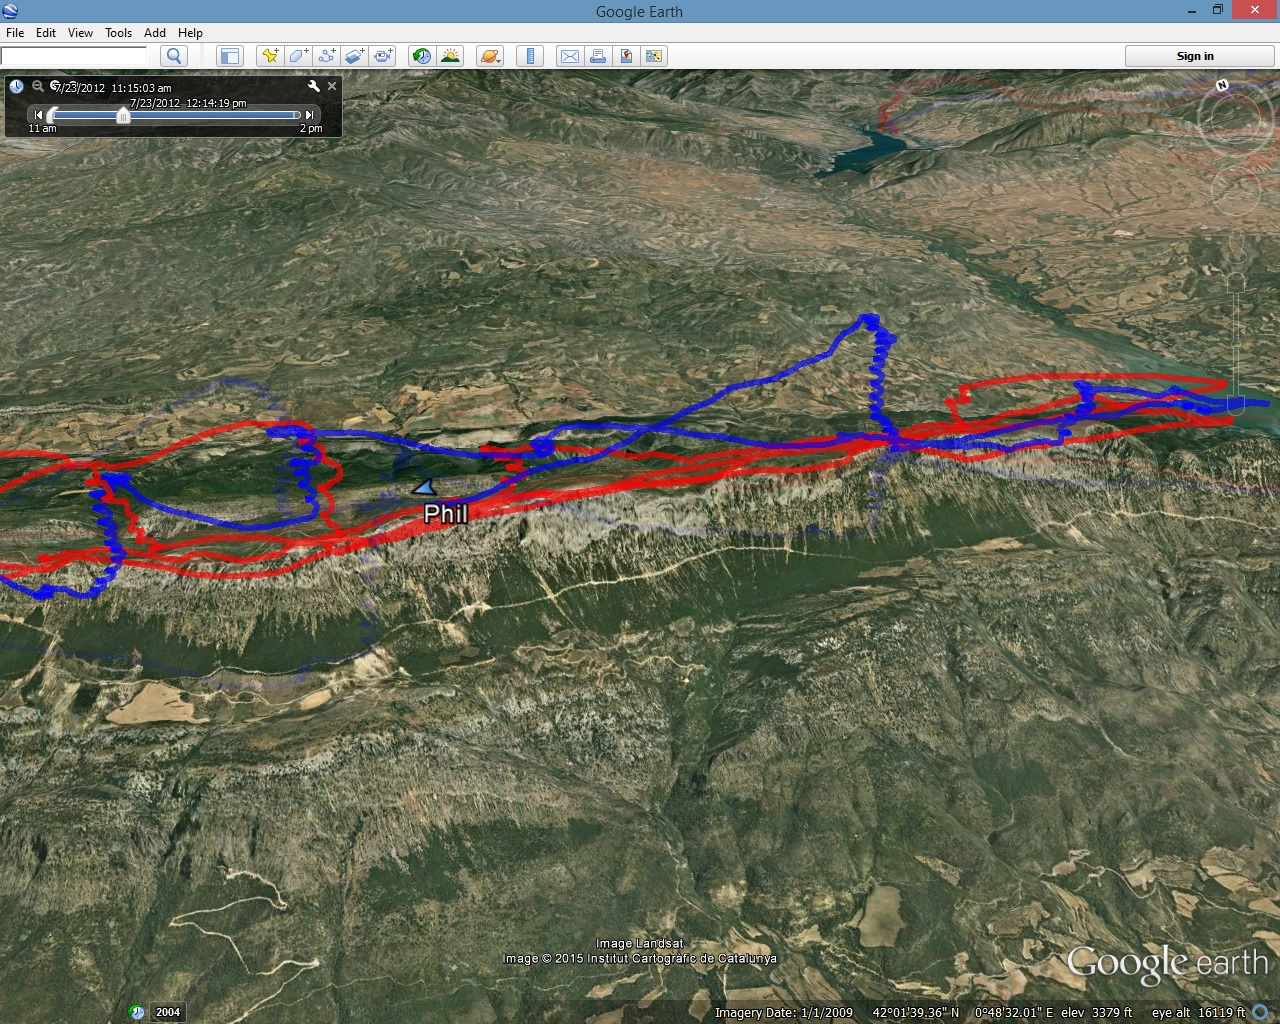 XC Secrets: Learning From Tracklogs (Phil Clark) - Flybubble